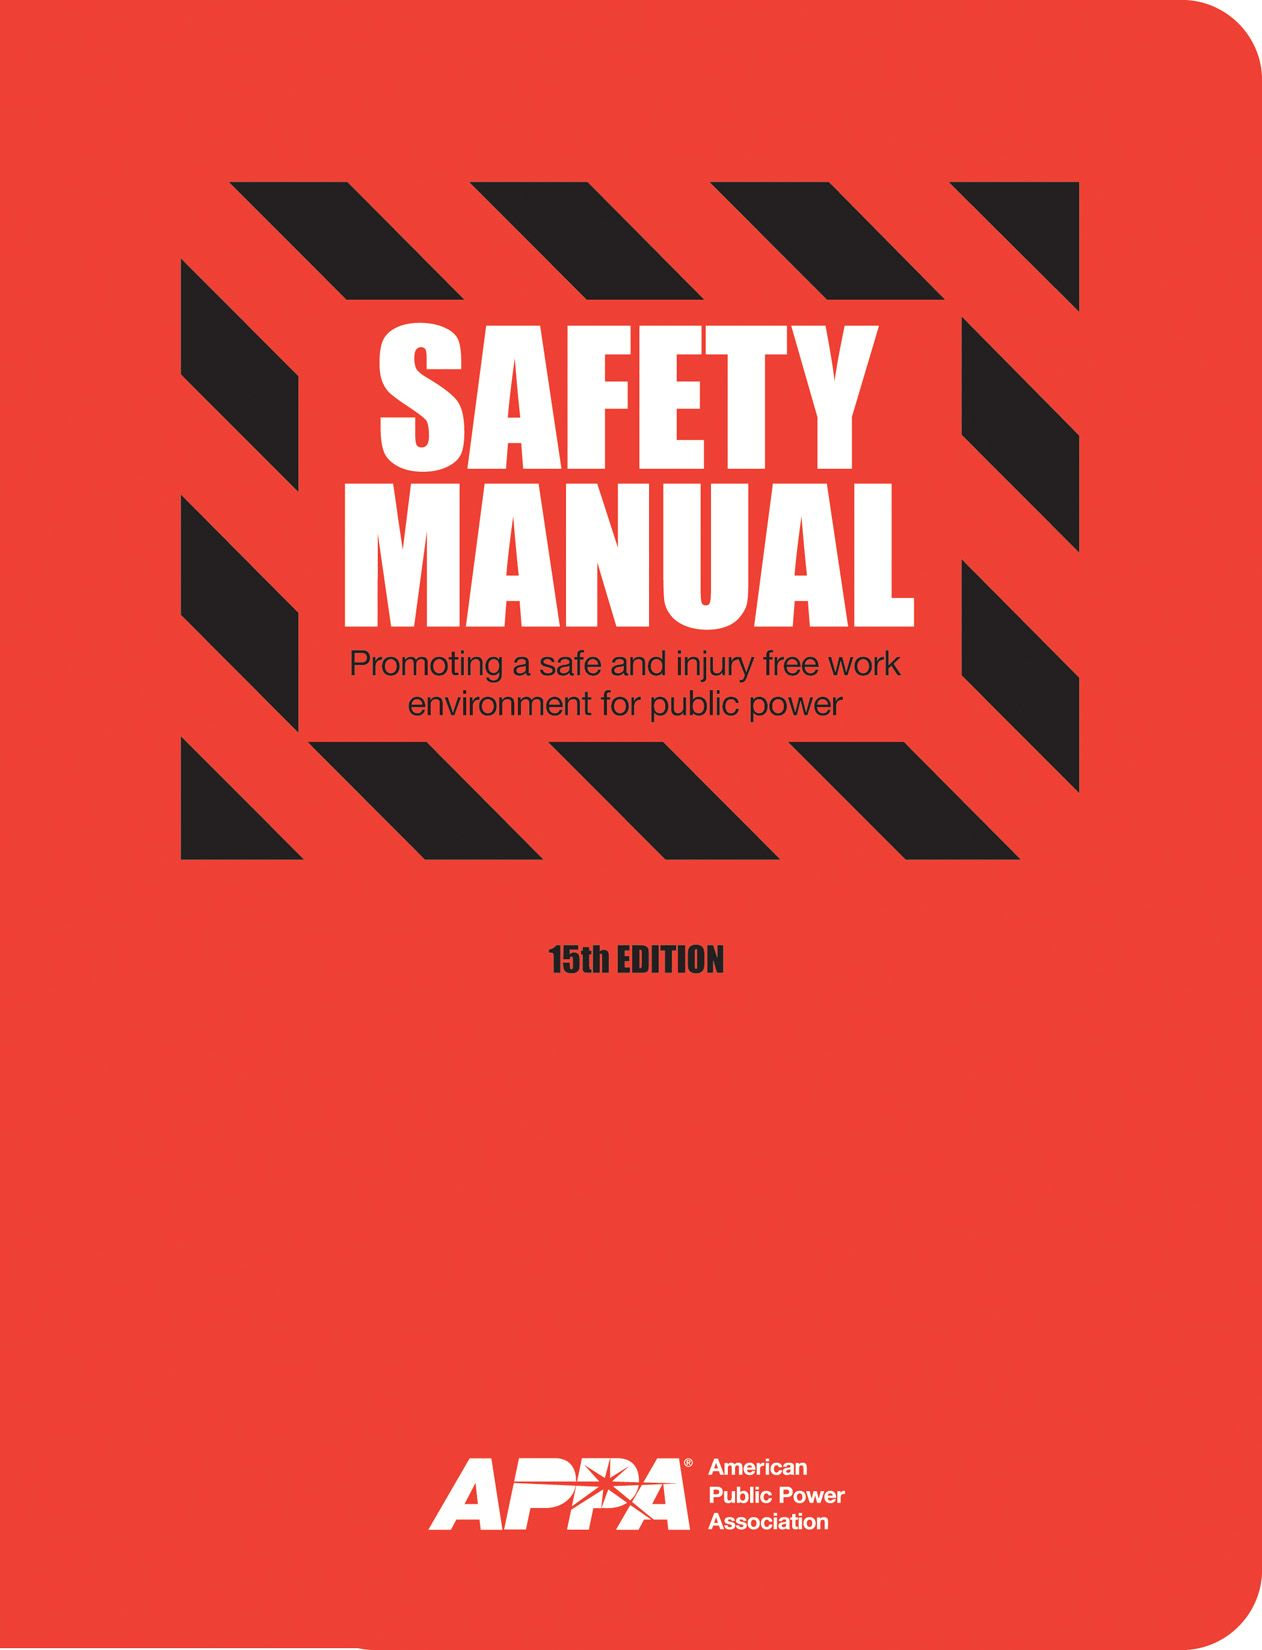 free osha safety manual template - safety manual cover design thesis aesthetics